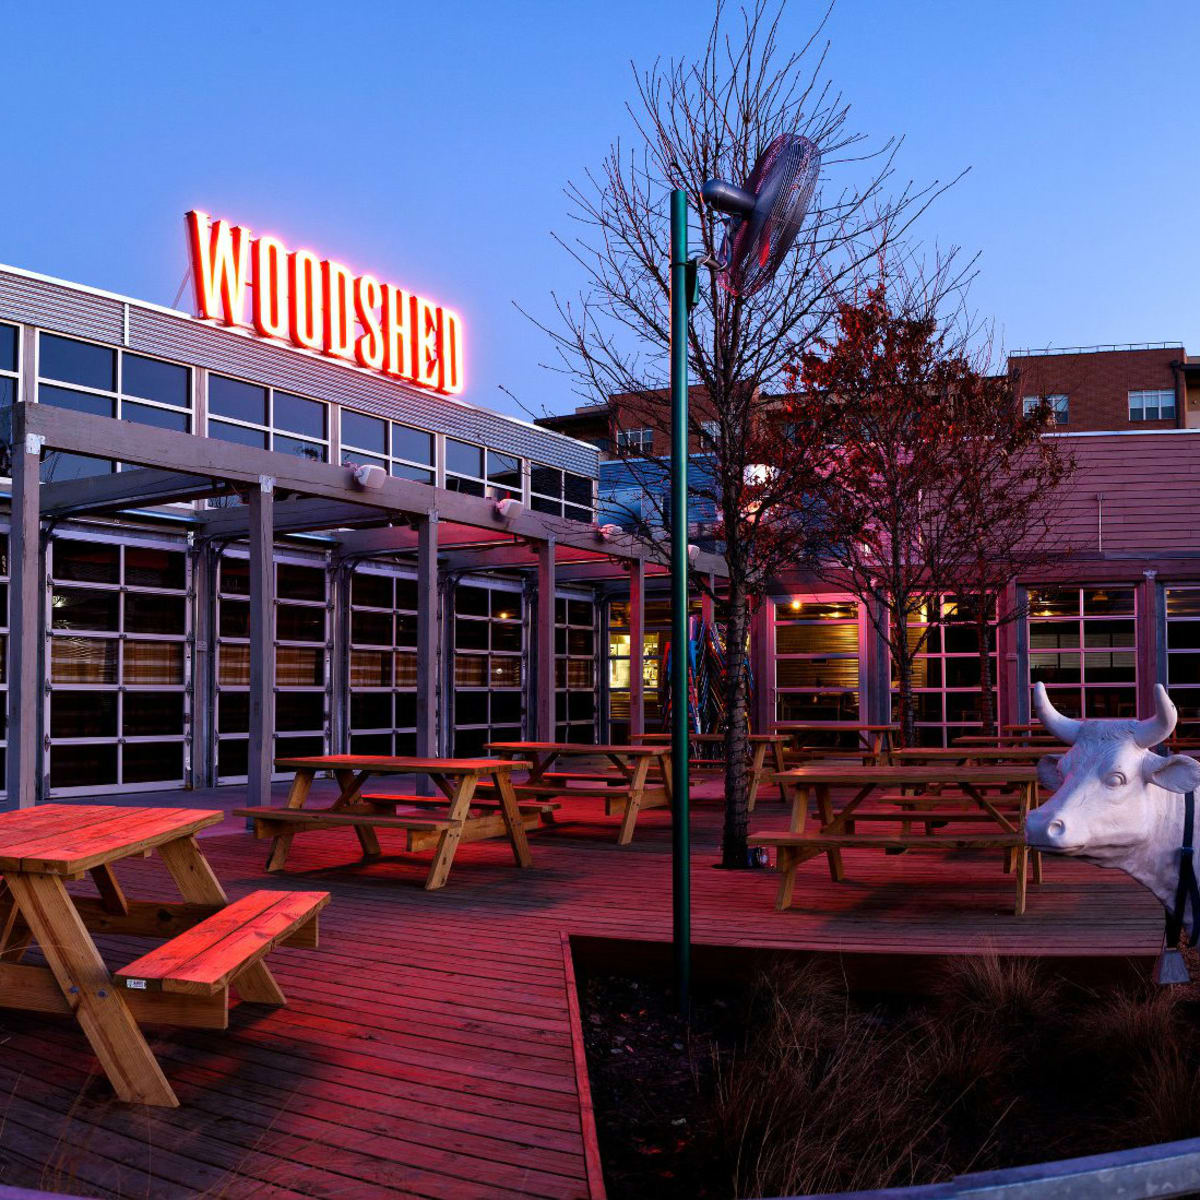 Woodshed Smokehouse in Fort Worth